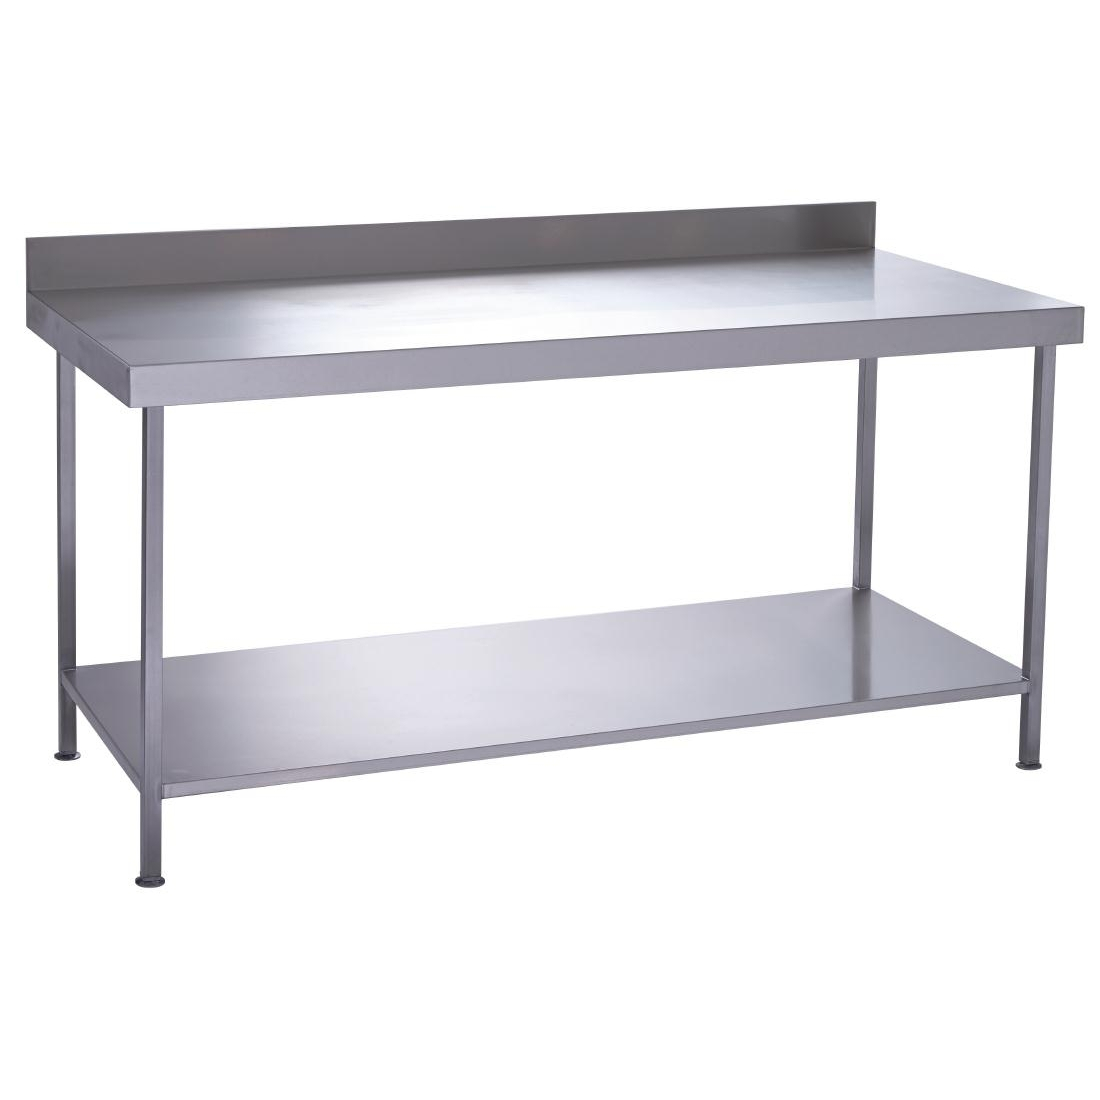 Parry Fully Welded Stainless Steel Wall Table with Undershelf 1800x700mm